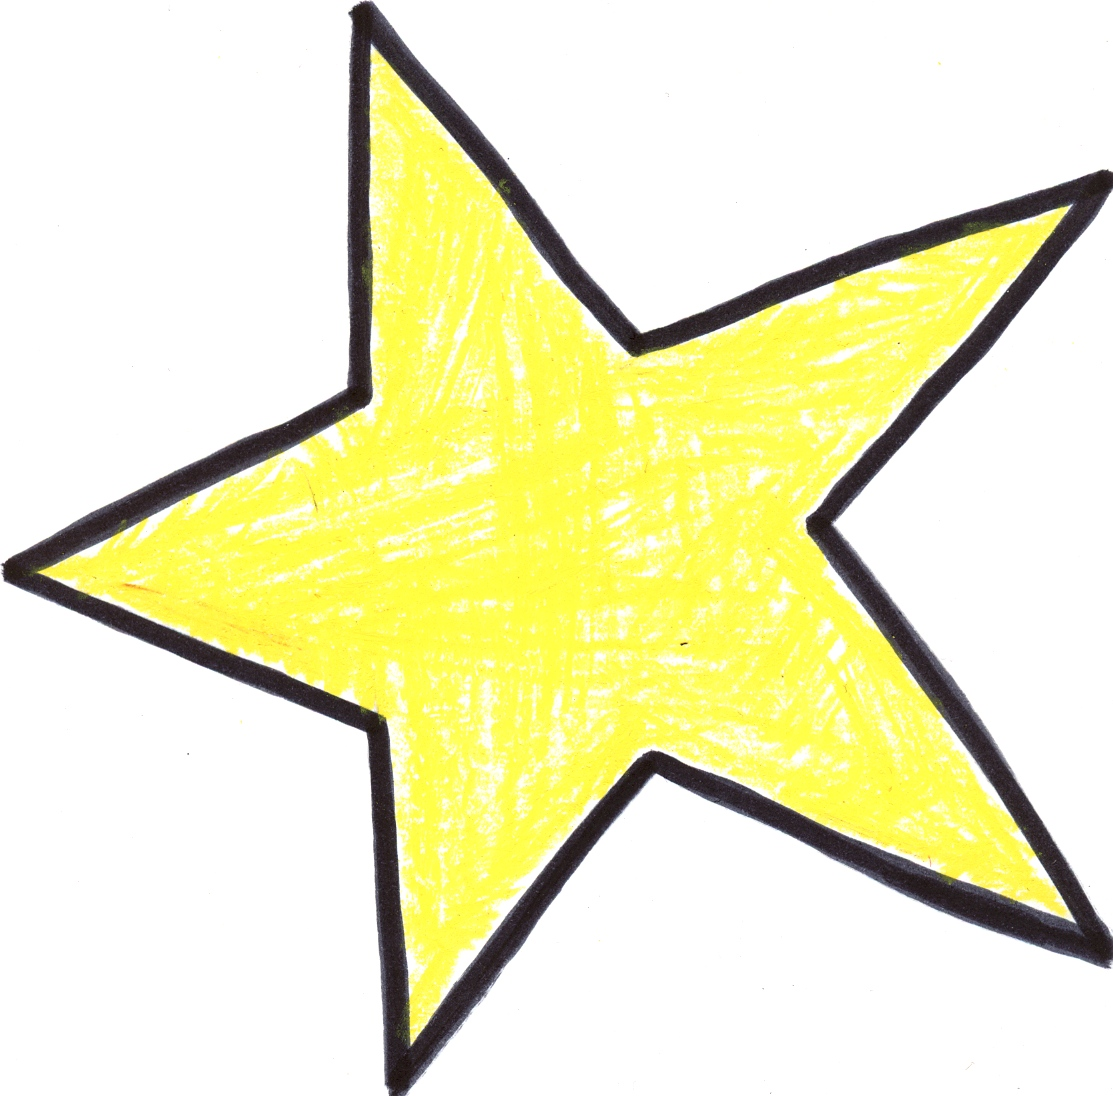 Hand drawn star clipart.